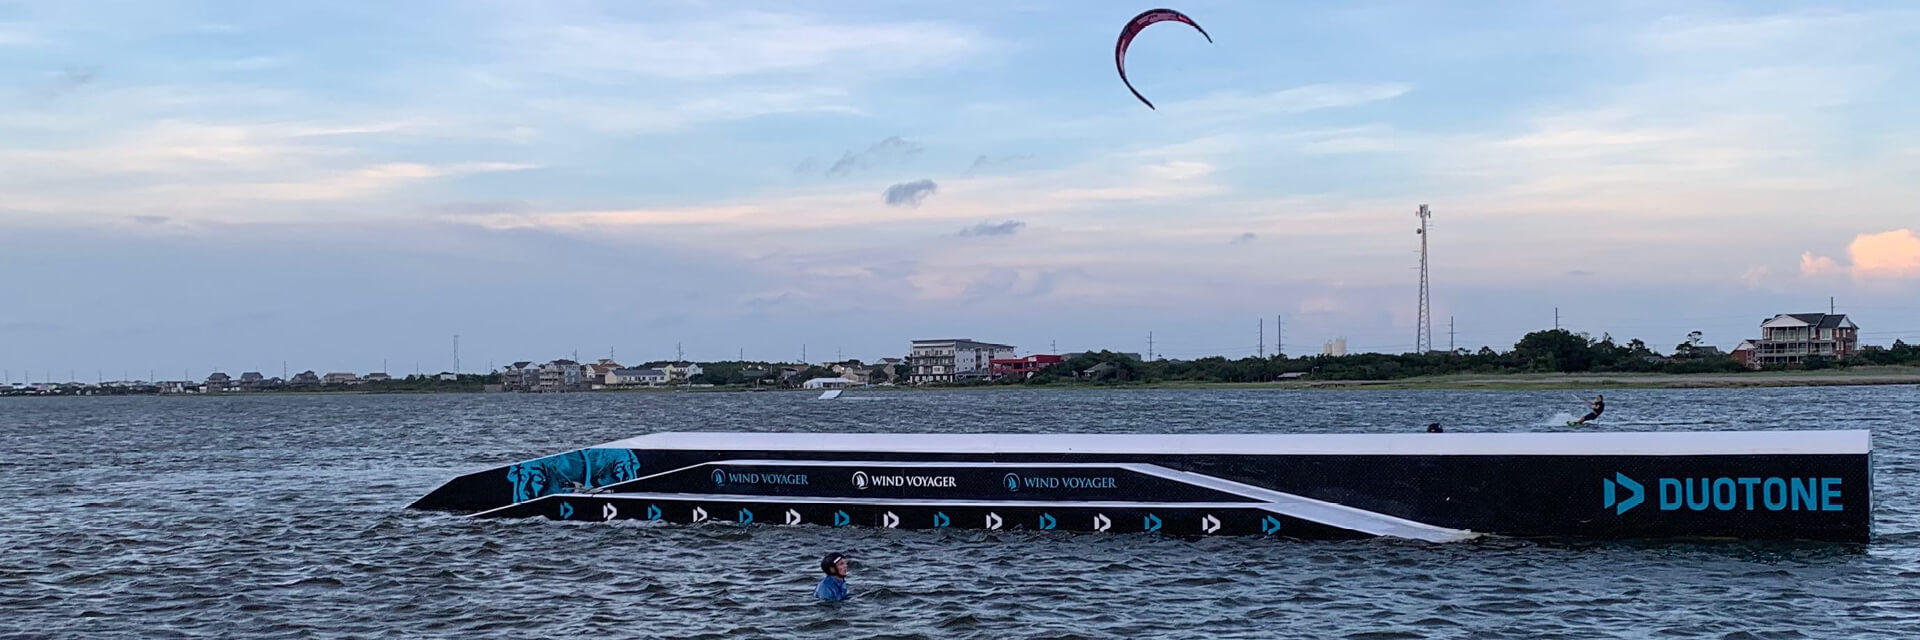 Duotone Kiteboarding New Rail 1